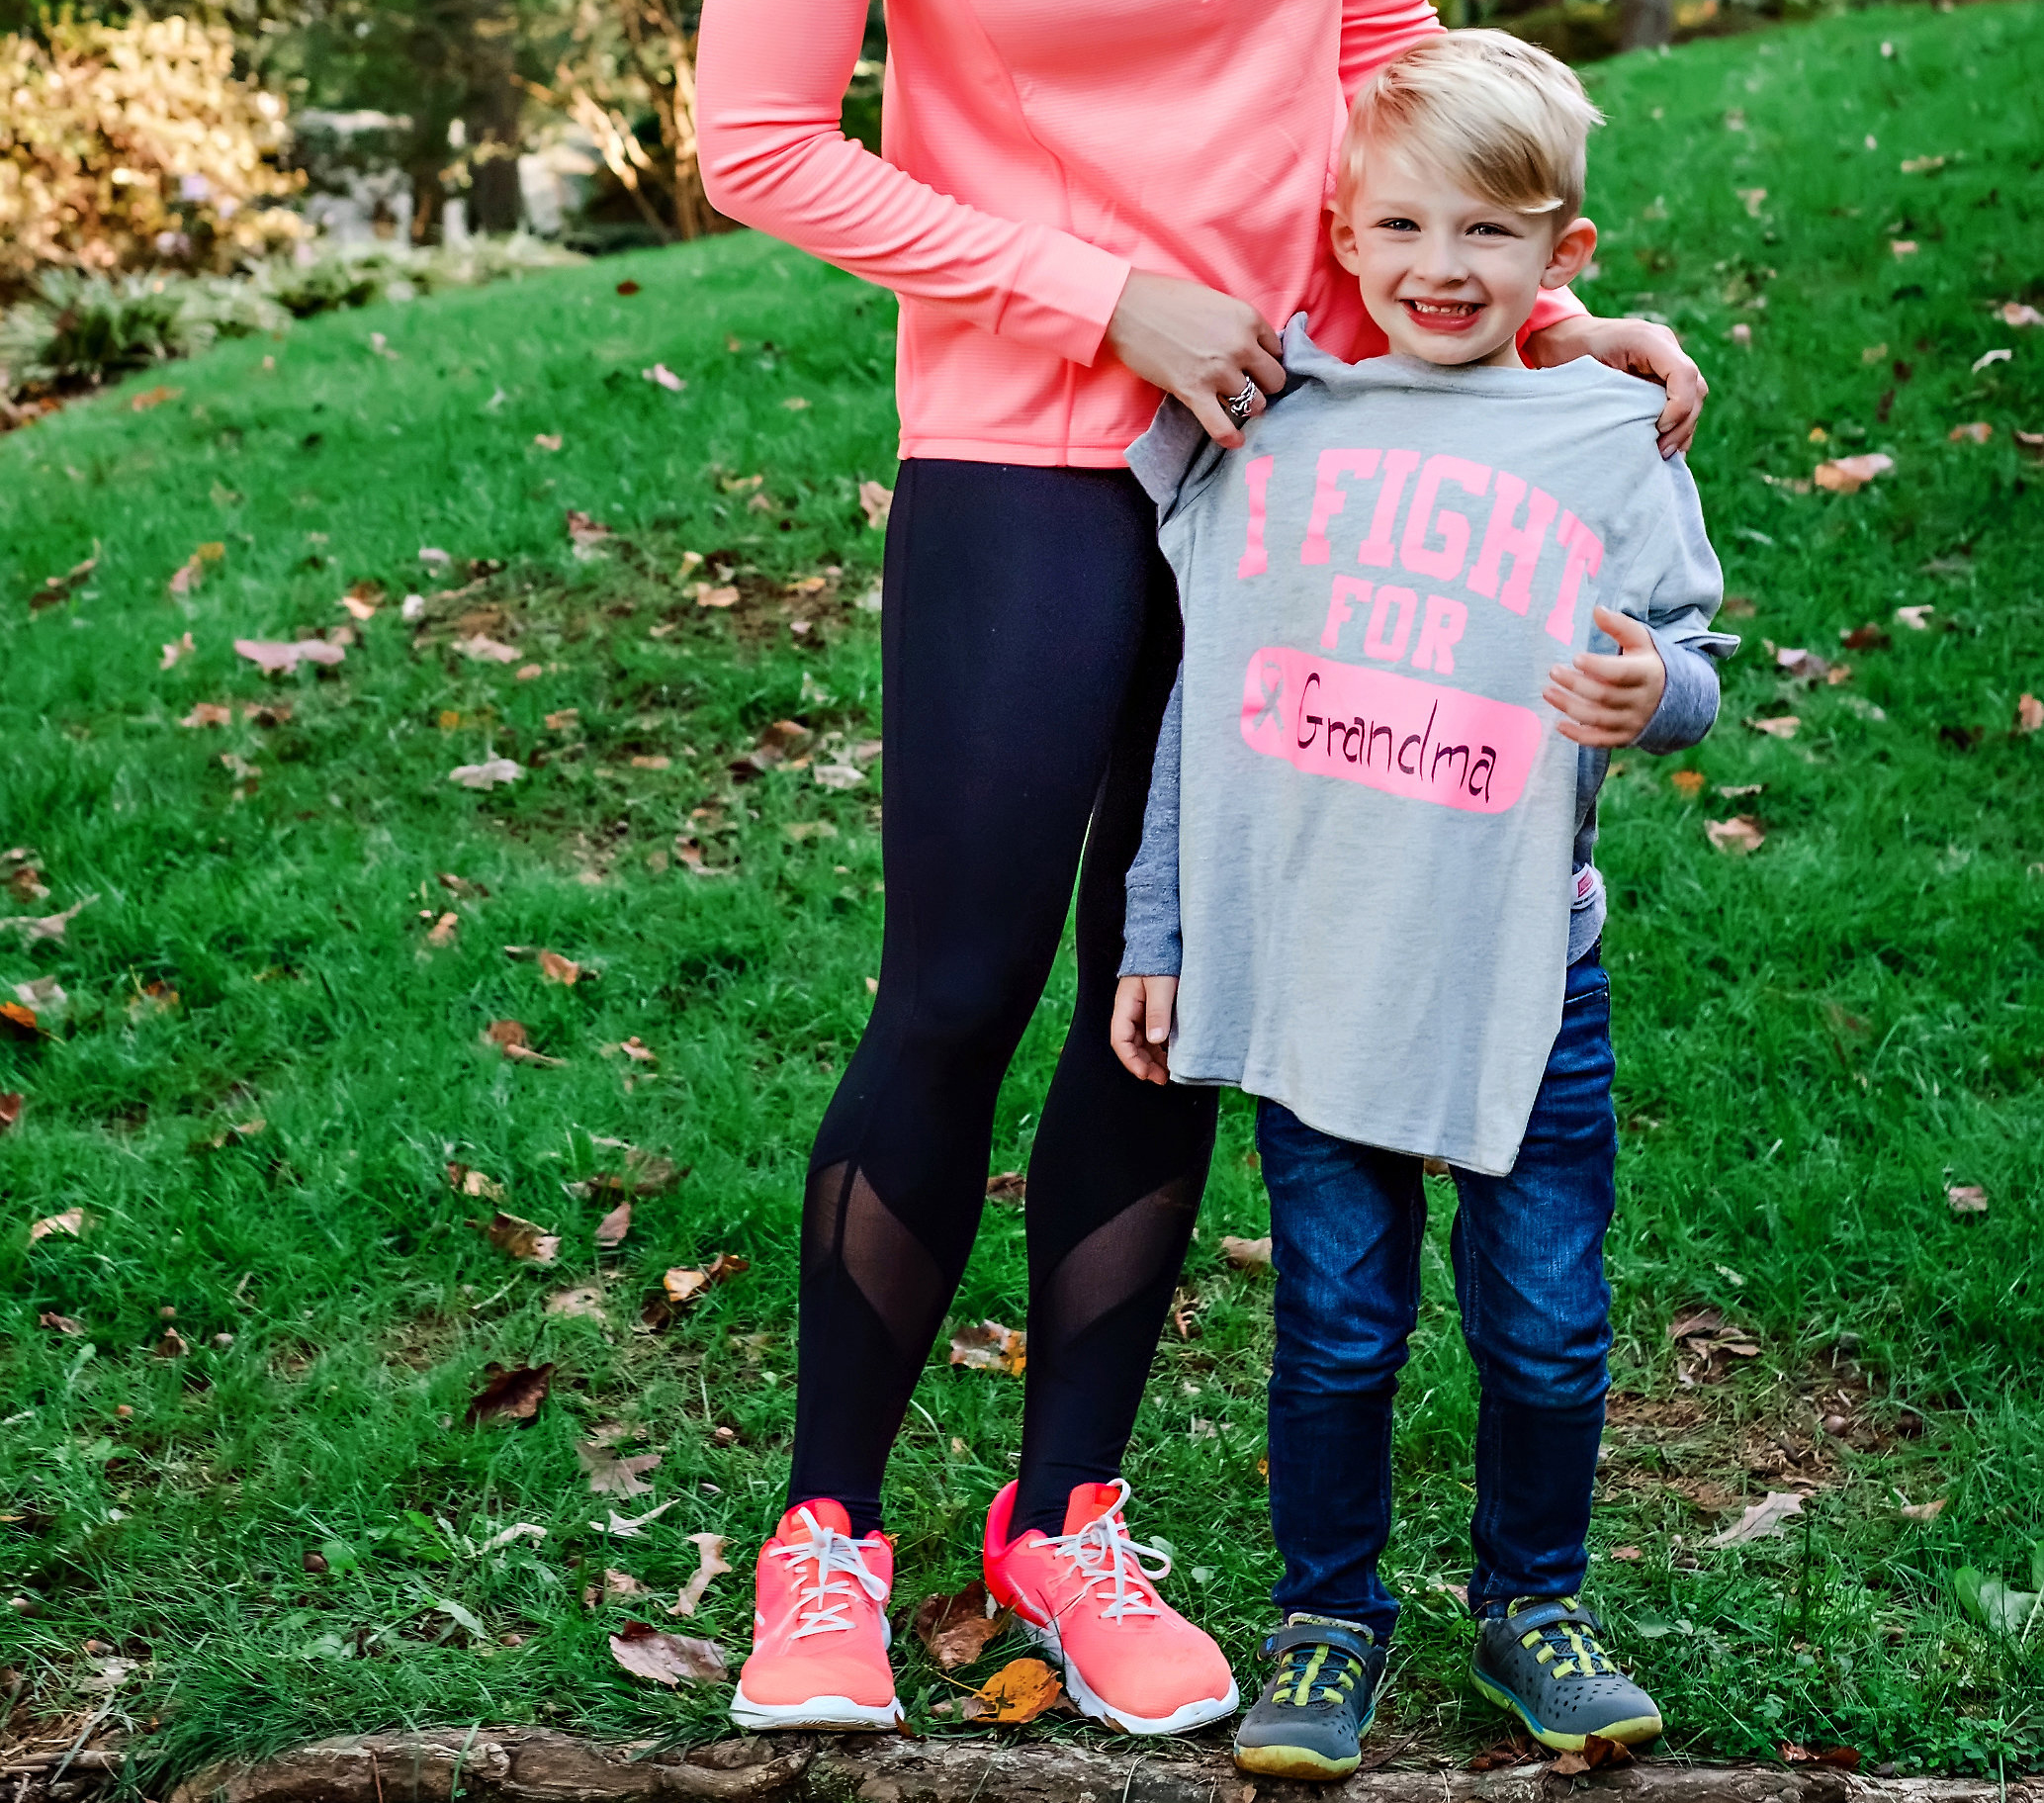 Breast Cancer Awareness with JCPenney by Atlanta style blogger Happily Hughes